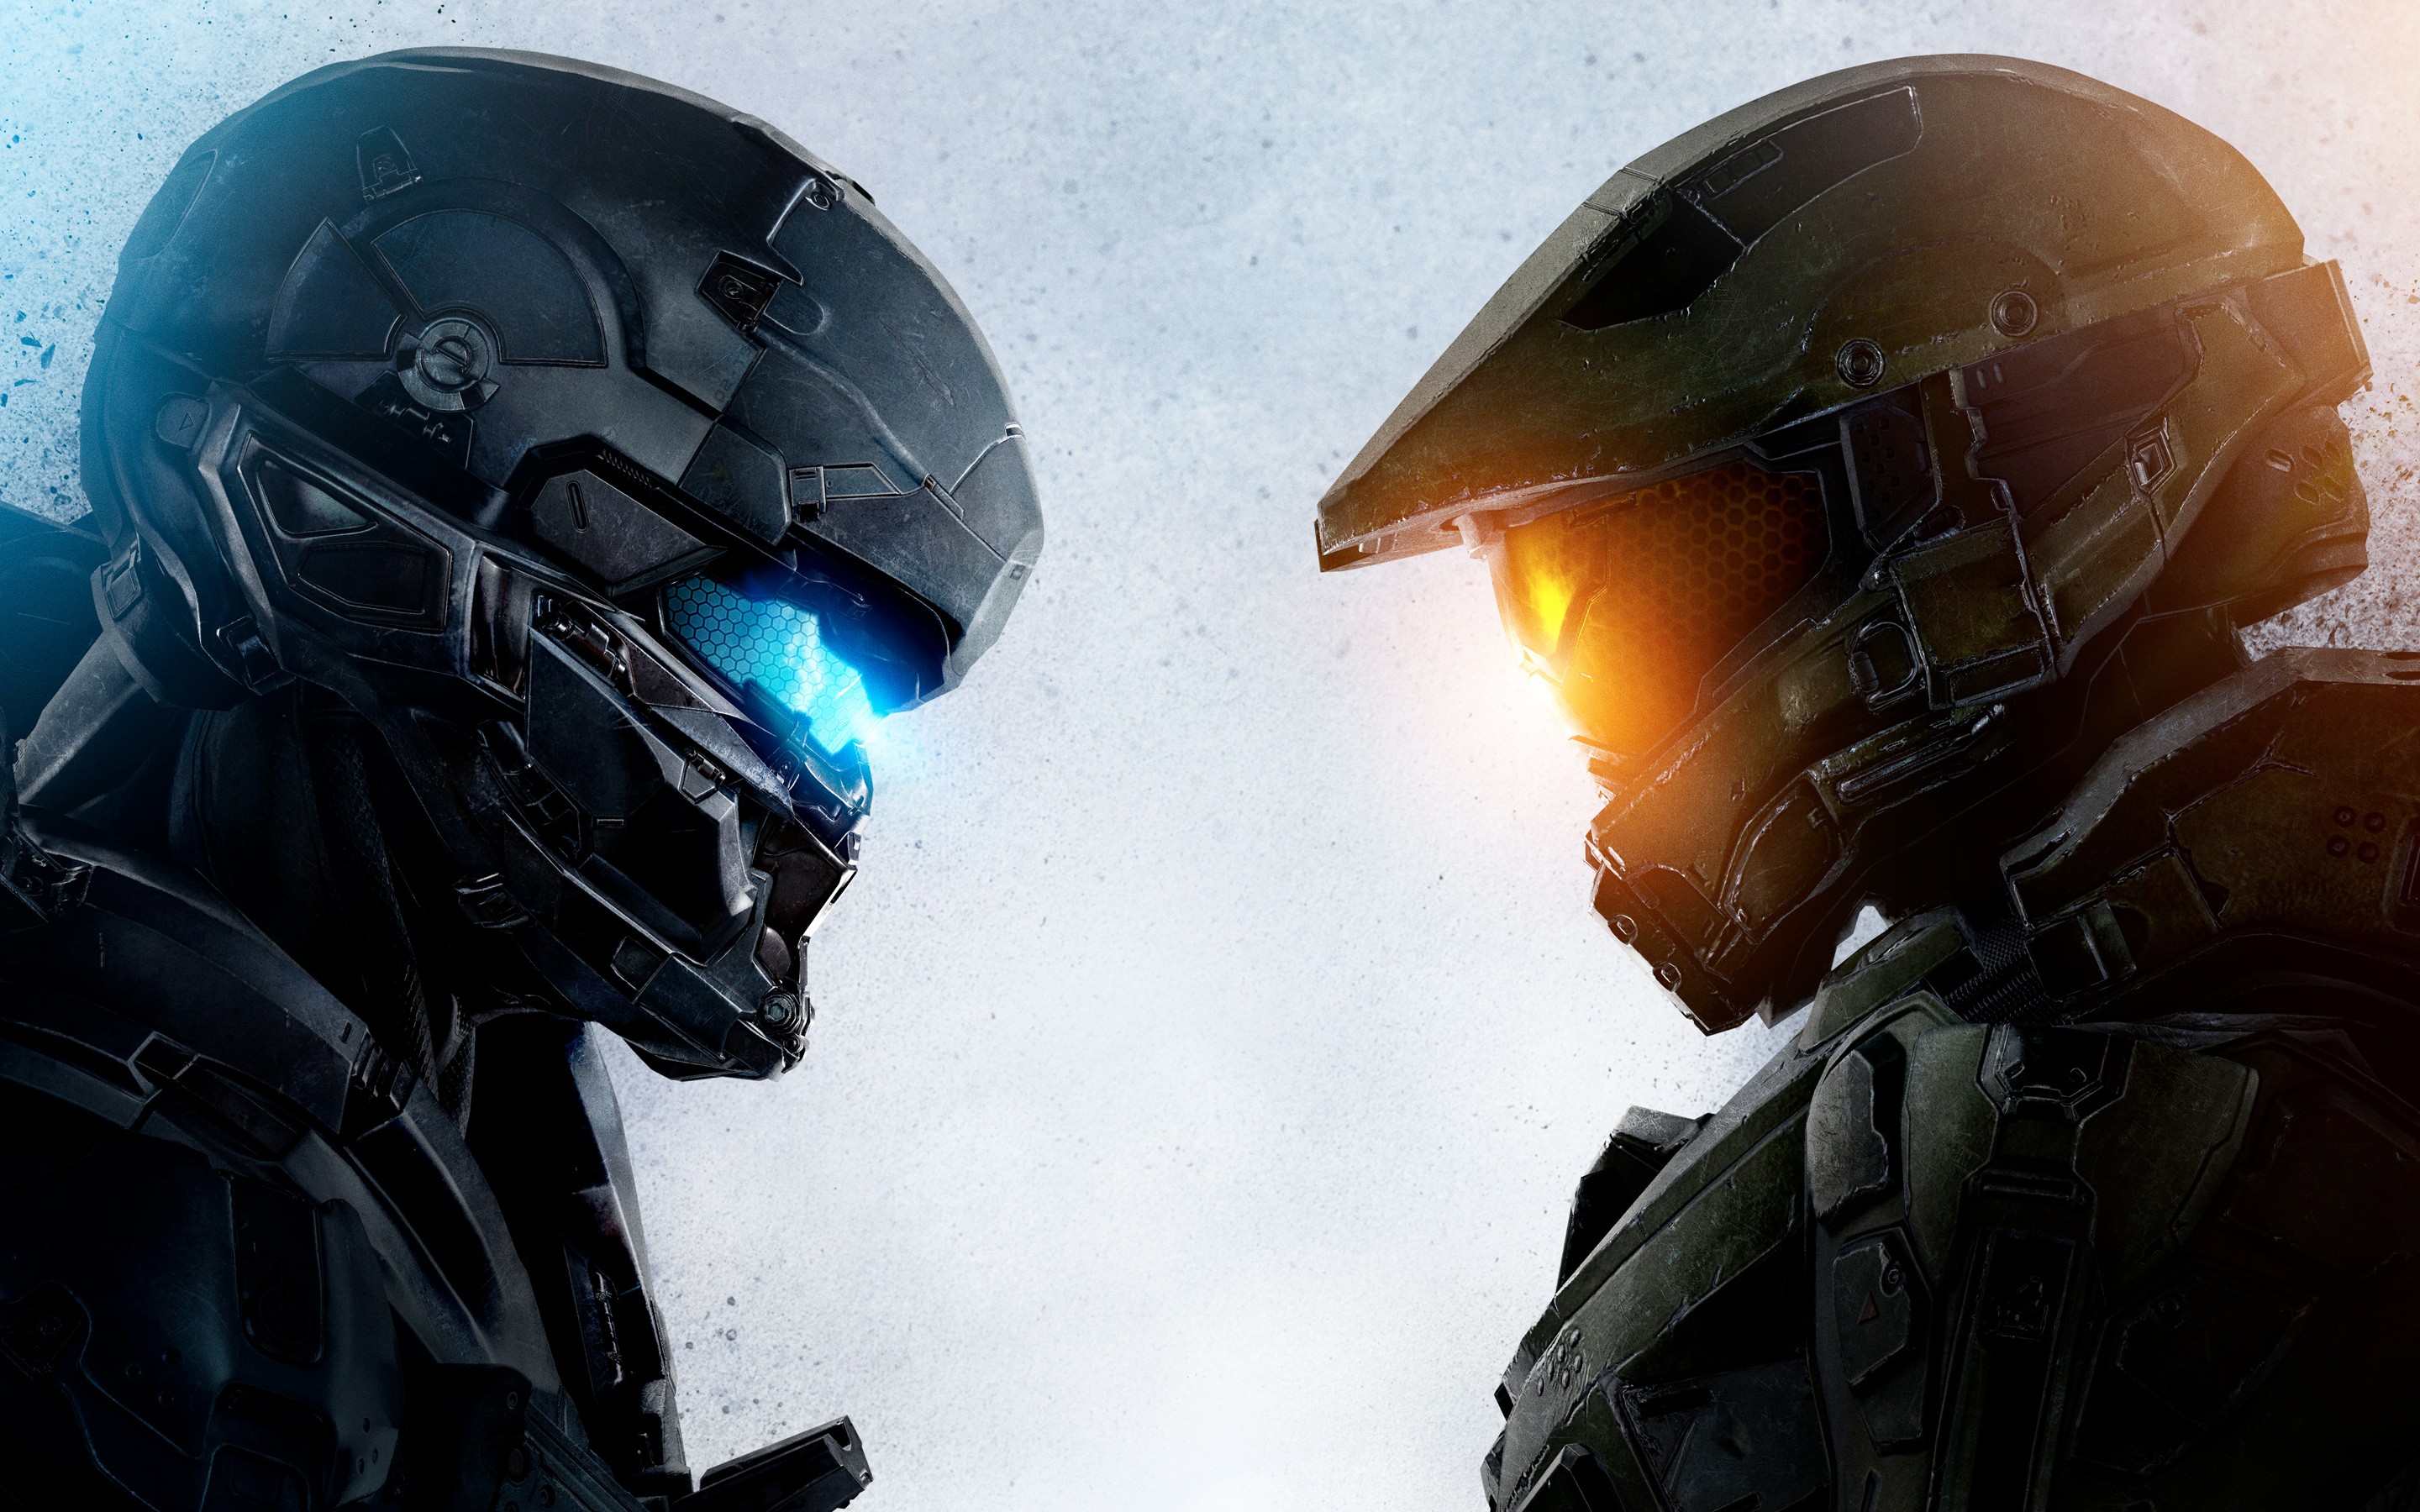 HD Wallpapers 2015 Halo 5 Guardians